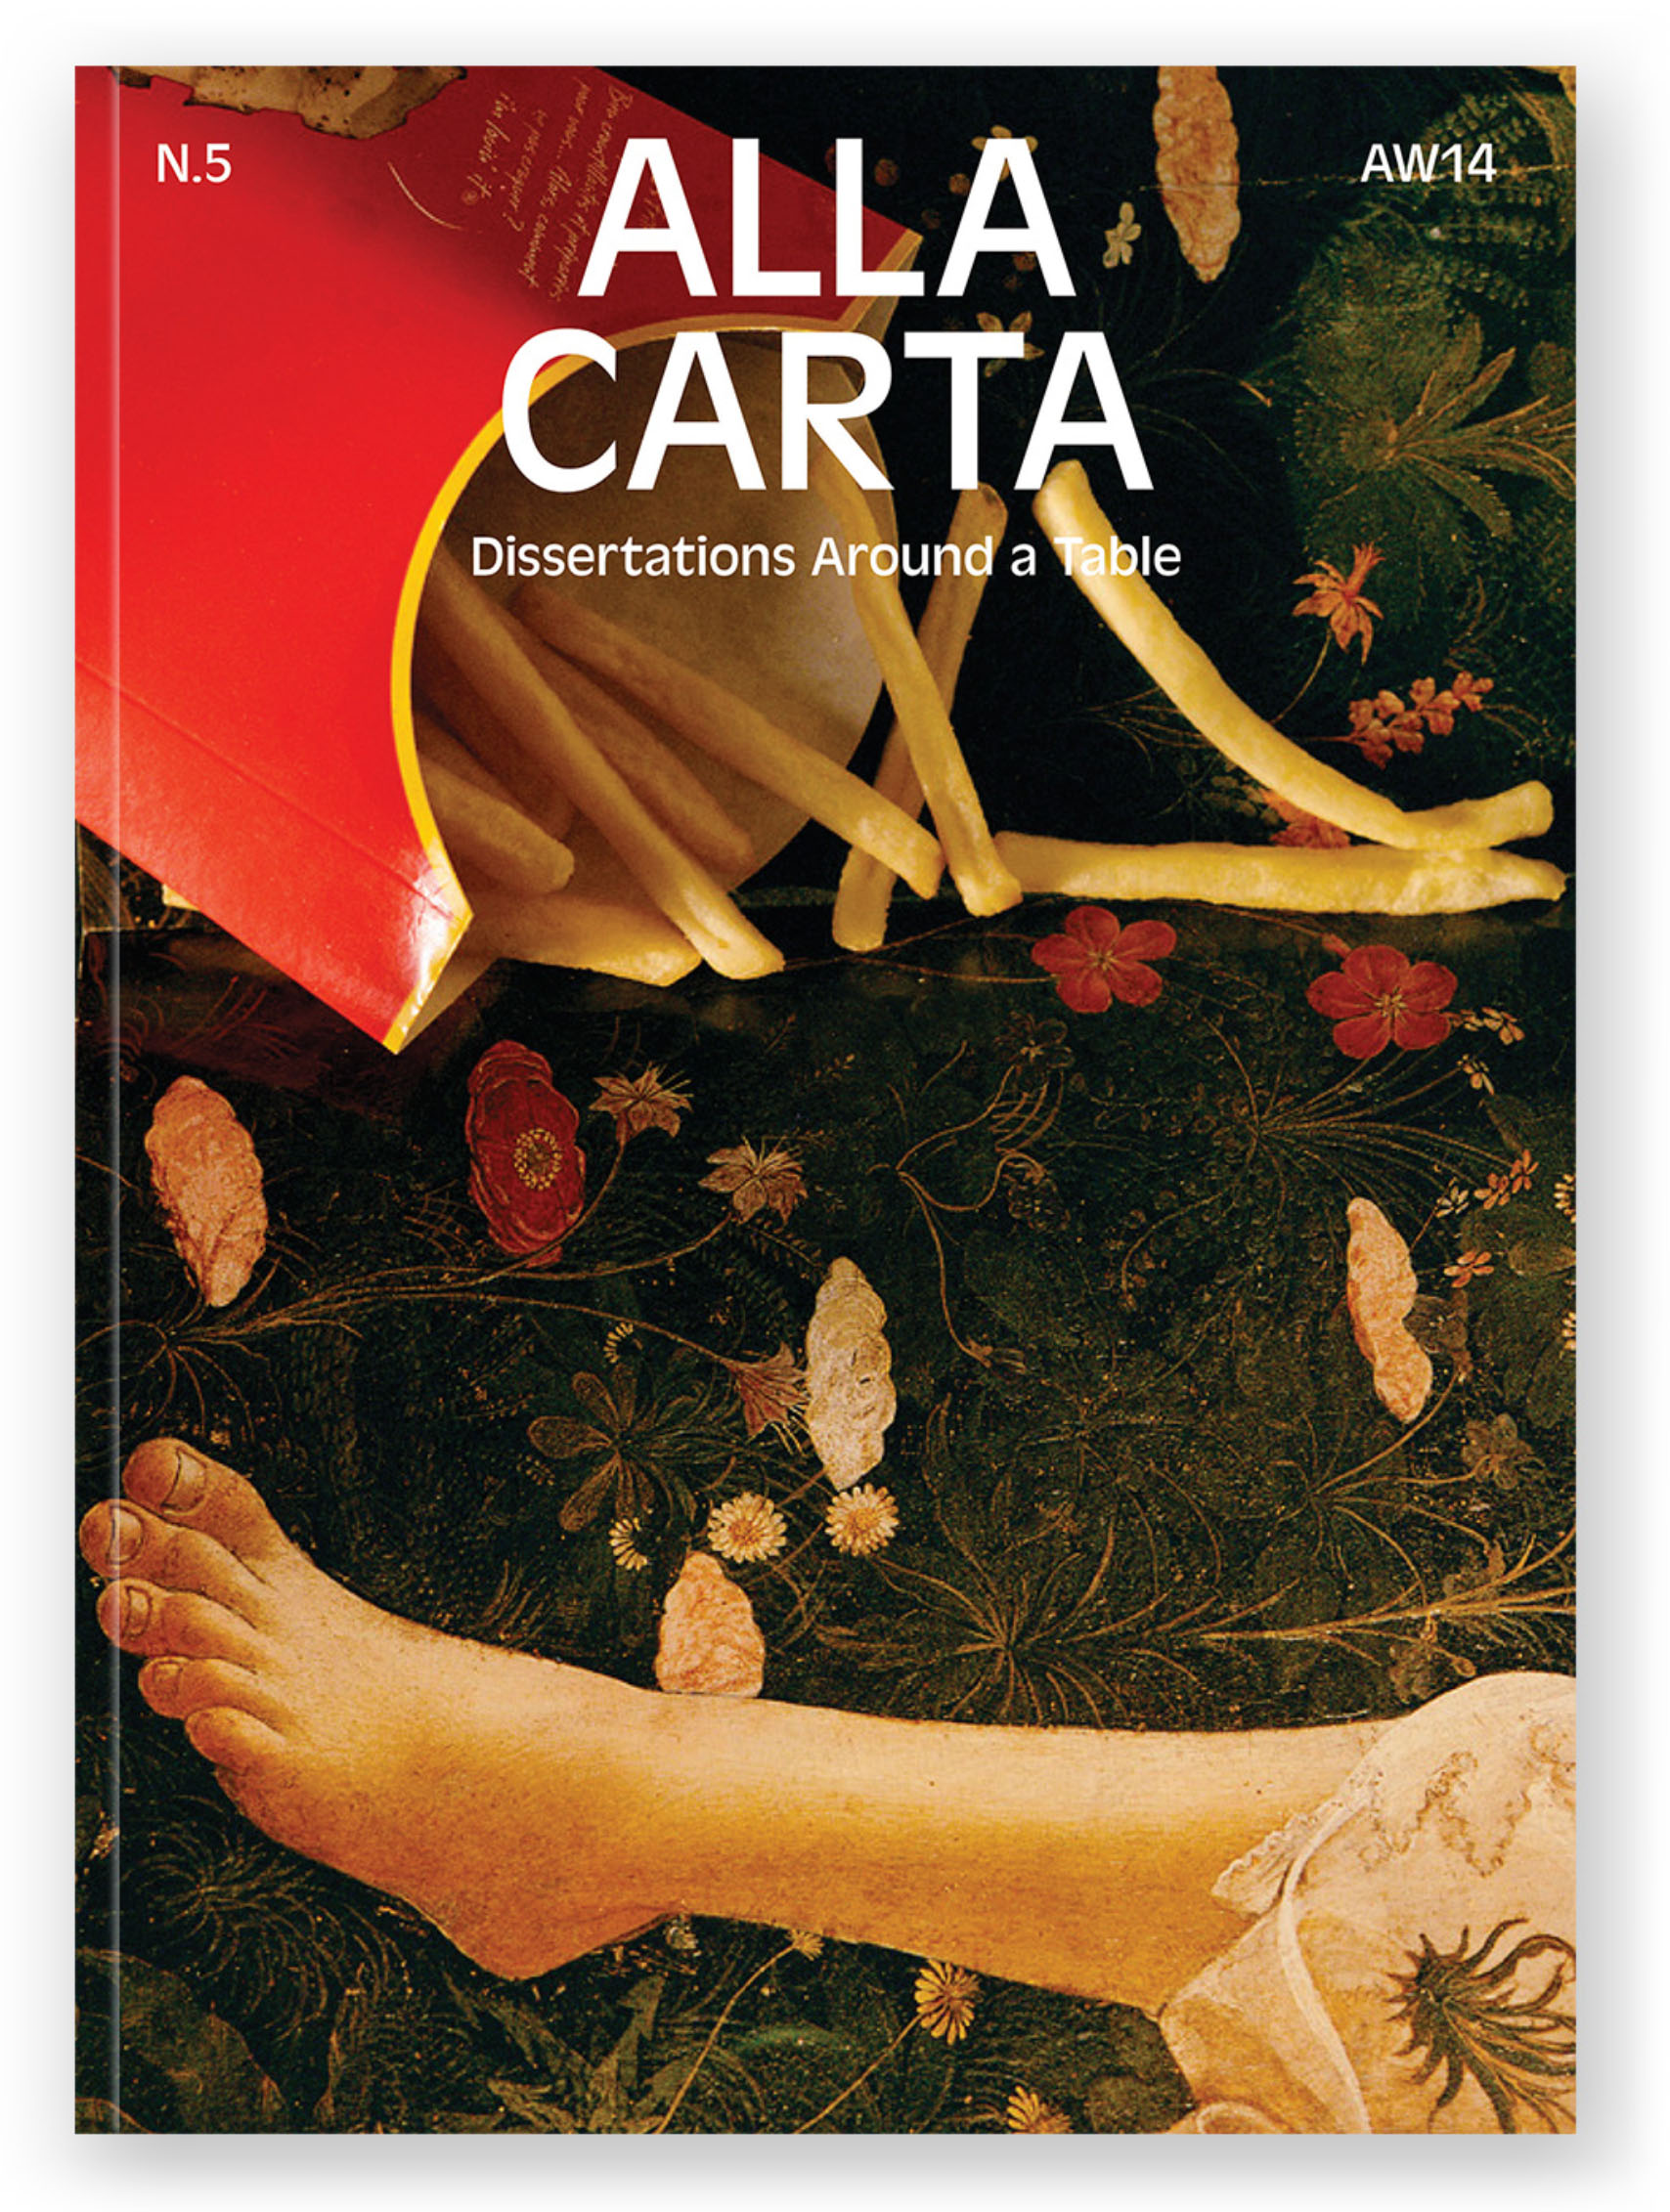 I shot this cover while eating French Fries on a Botticelli for *Alla Carta*'s AW14 issue. - © Maciek Pożoga